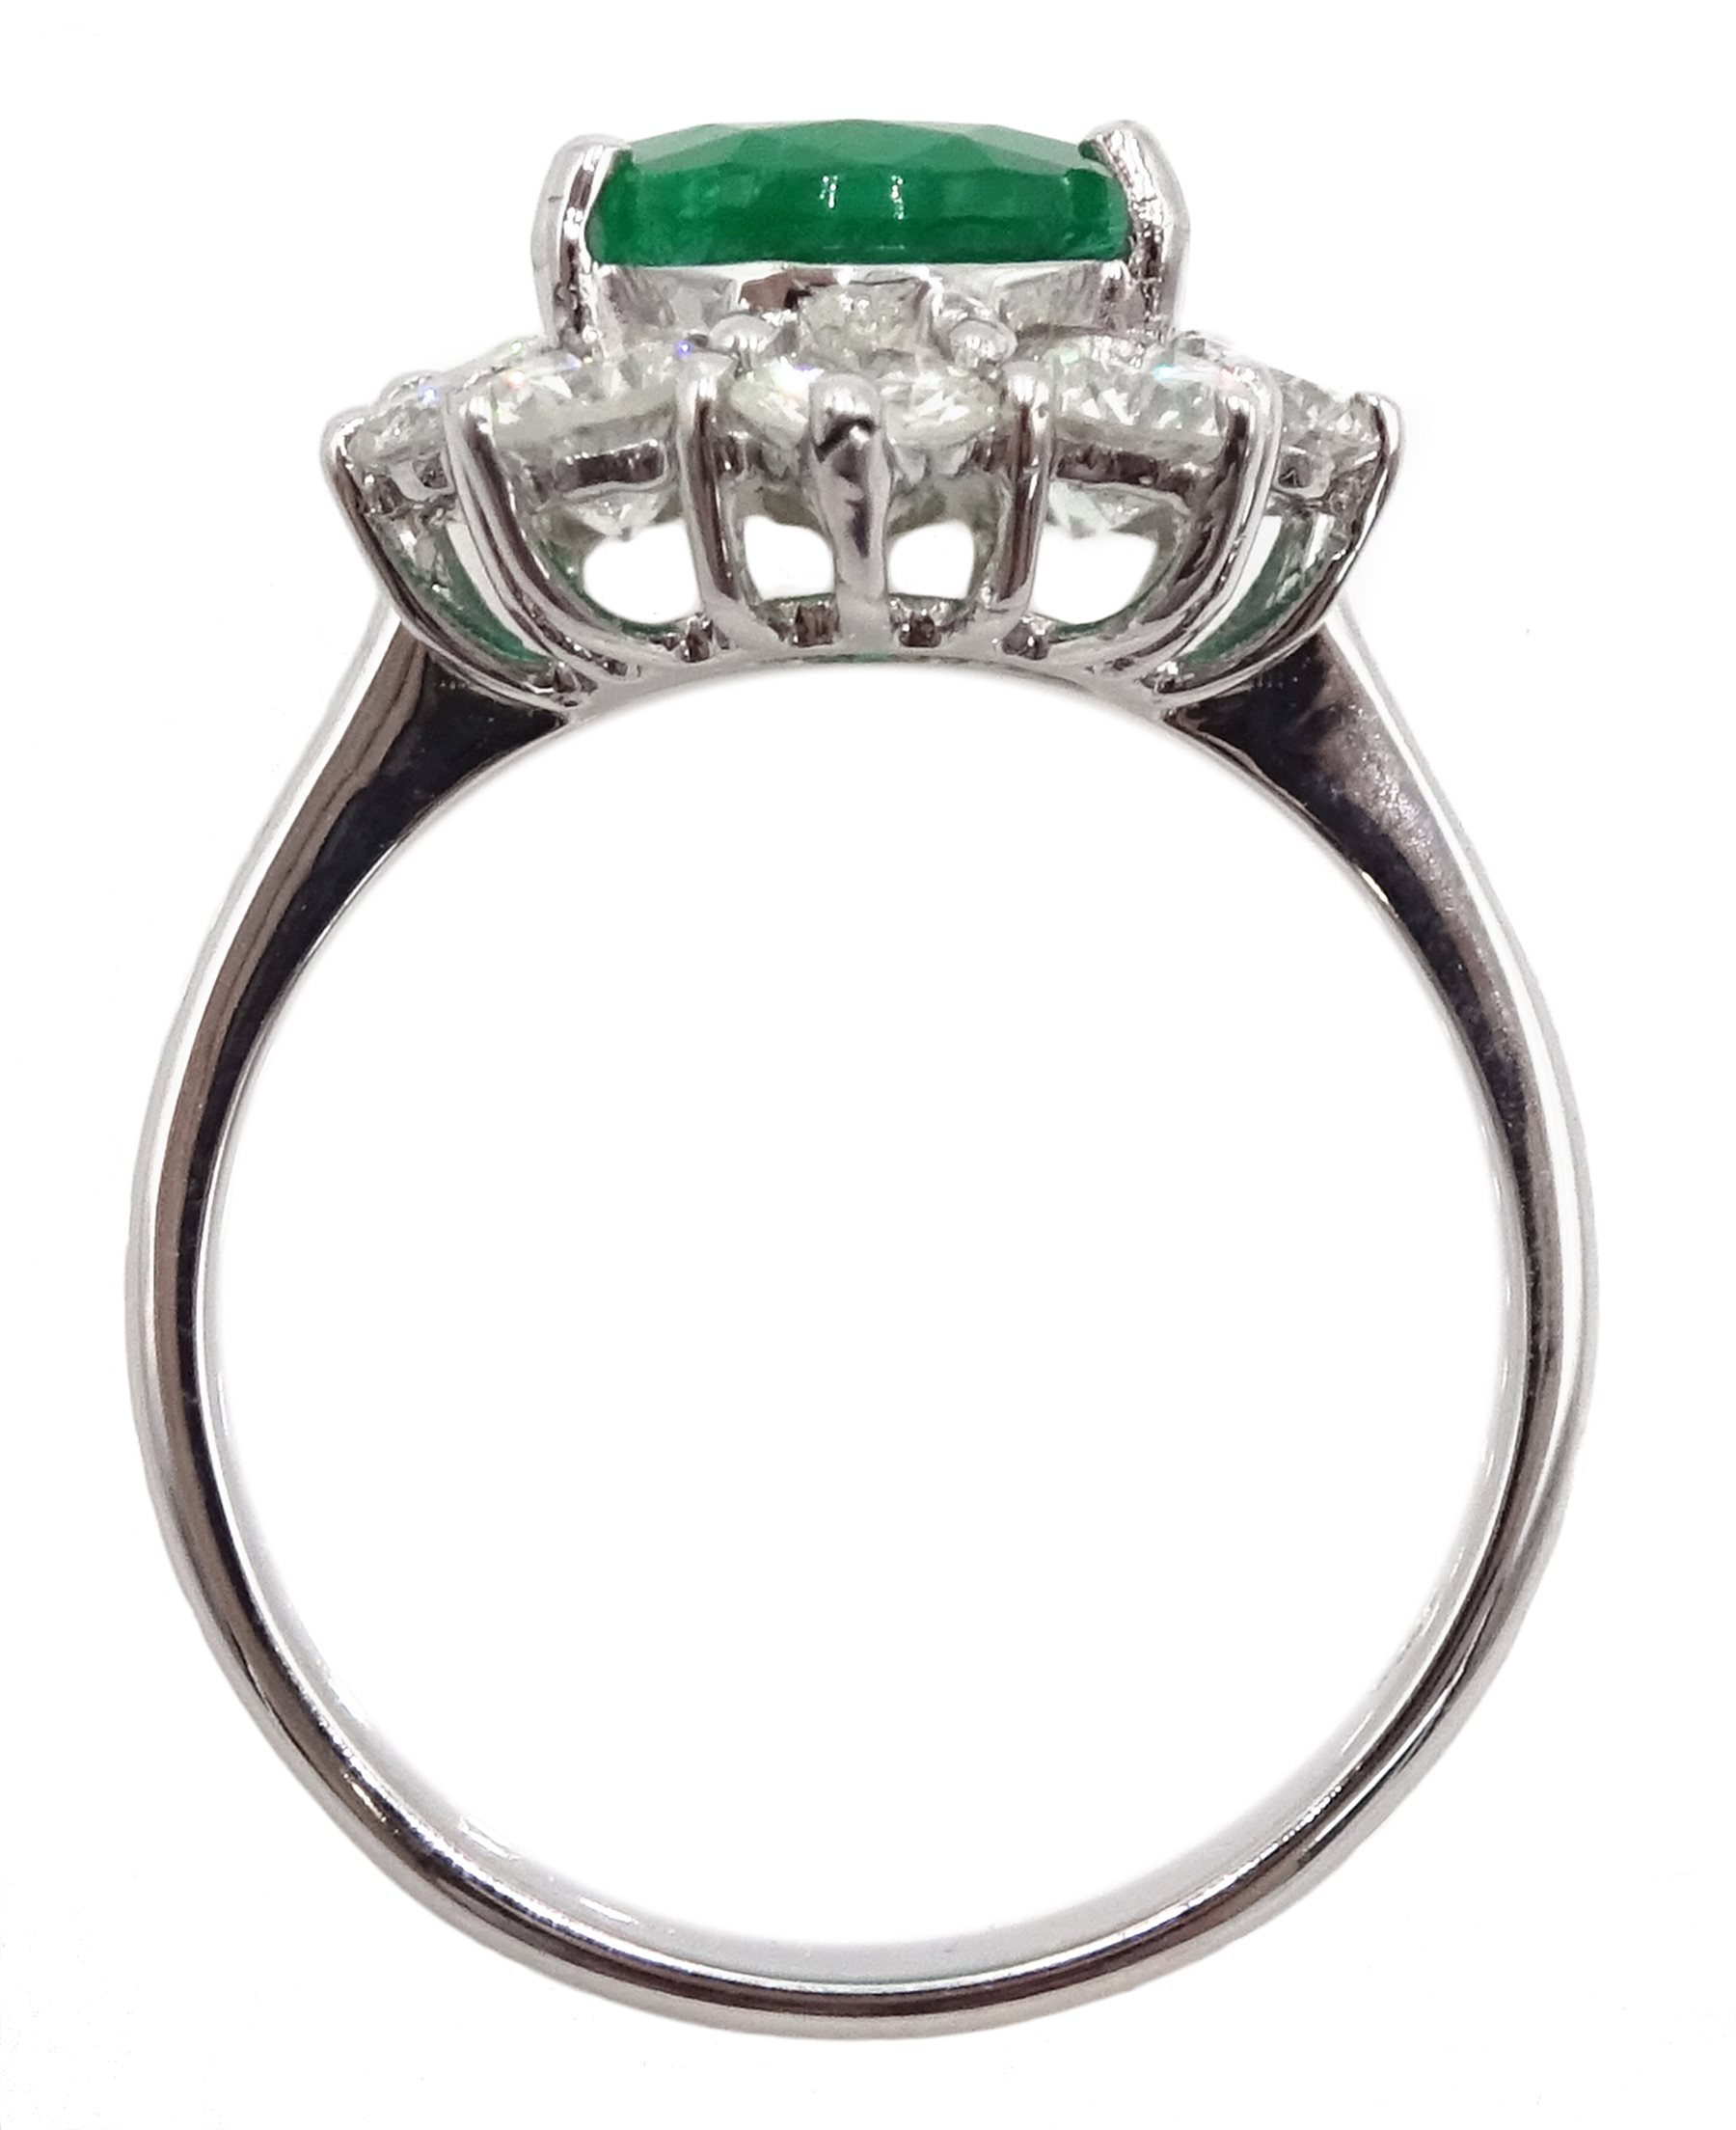 White gold oval emerald and round brilliant cut diamond ring, stamped 750, emerald approx 2.80 - Image 5 of 5